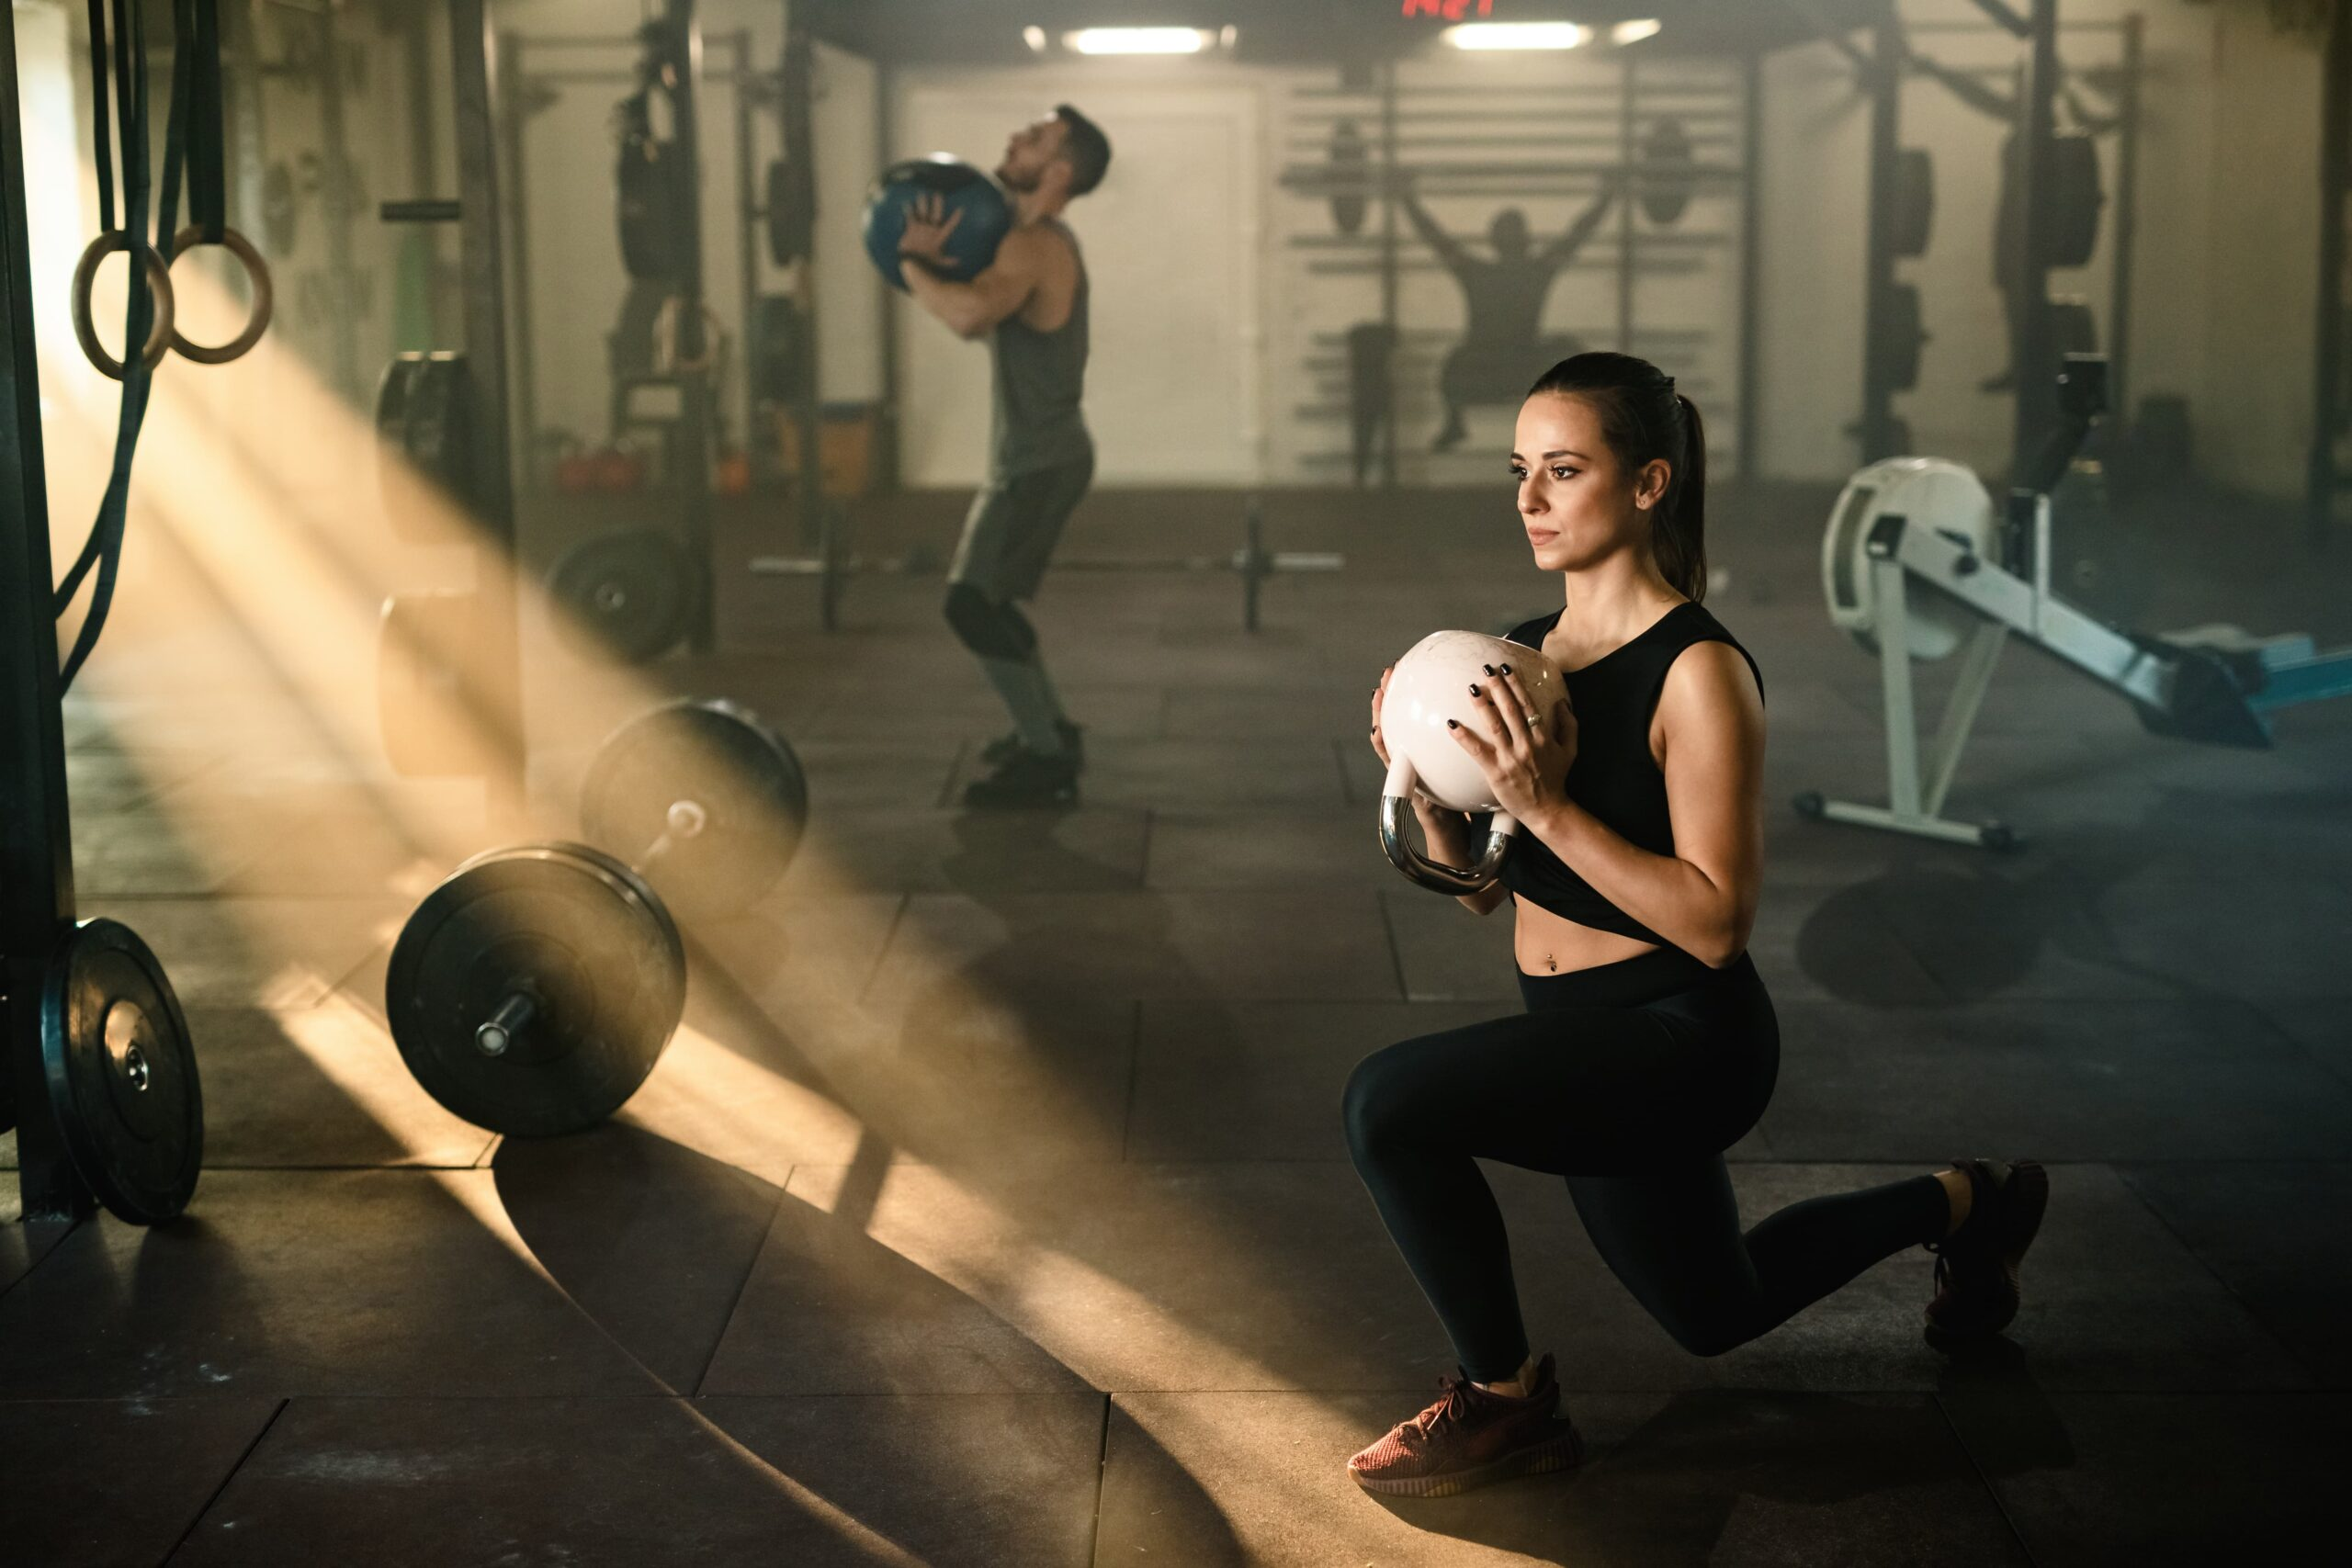 Three Amazing Health Benefits Of Circuit Training You Didn't Know